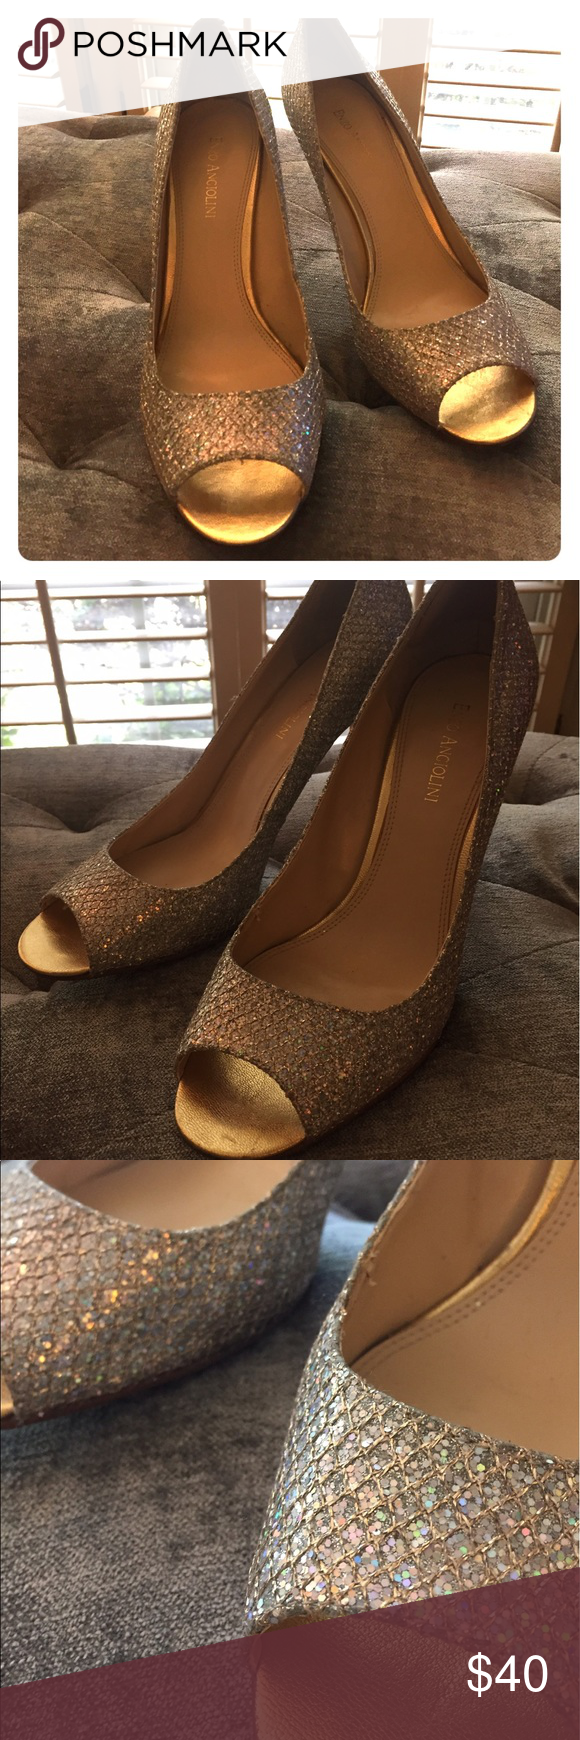 Enzo Metallic Heels Super chic and dressy peep toe heels from Enzo Angiolini in a size 9.5.  The right shoe has the lining slightly coming up at the toe but just needs a little adhesive to set it in place.  Silver sparkly upper with gold heel. Enzo Angiolini Shoes Heels